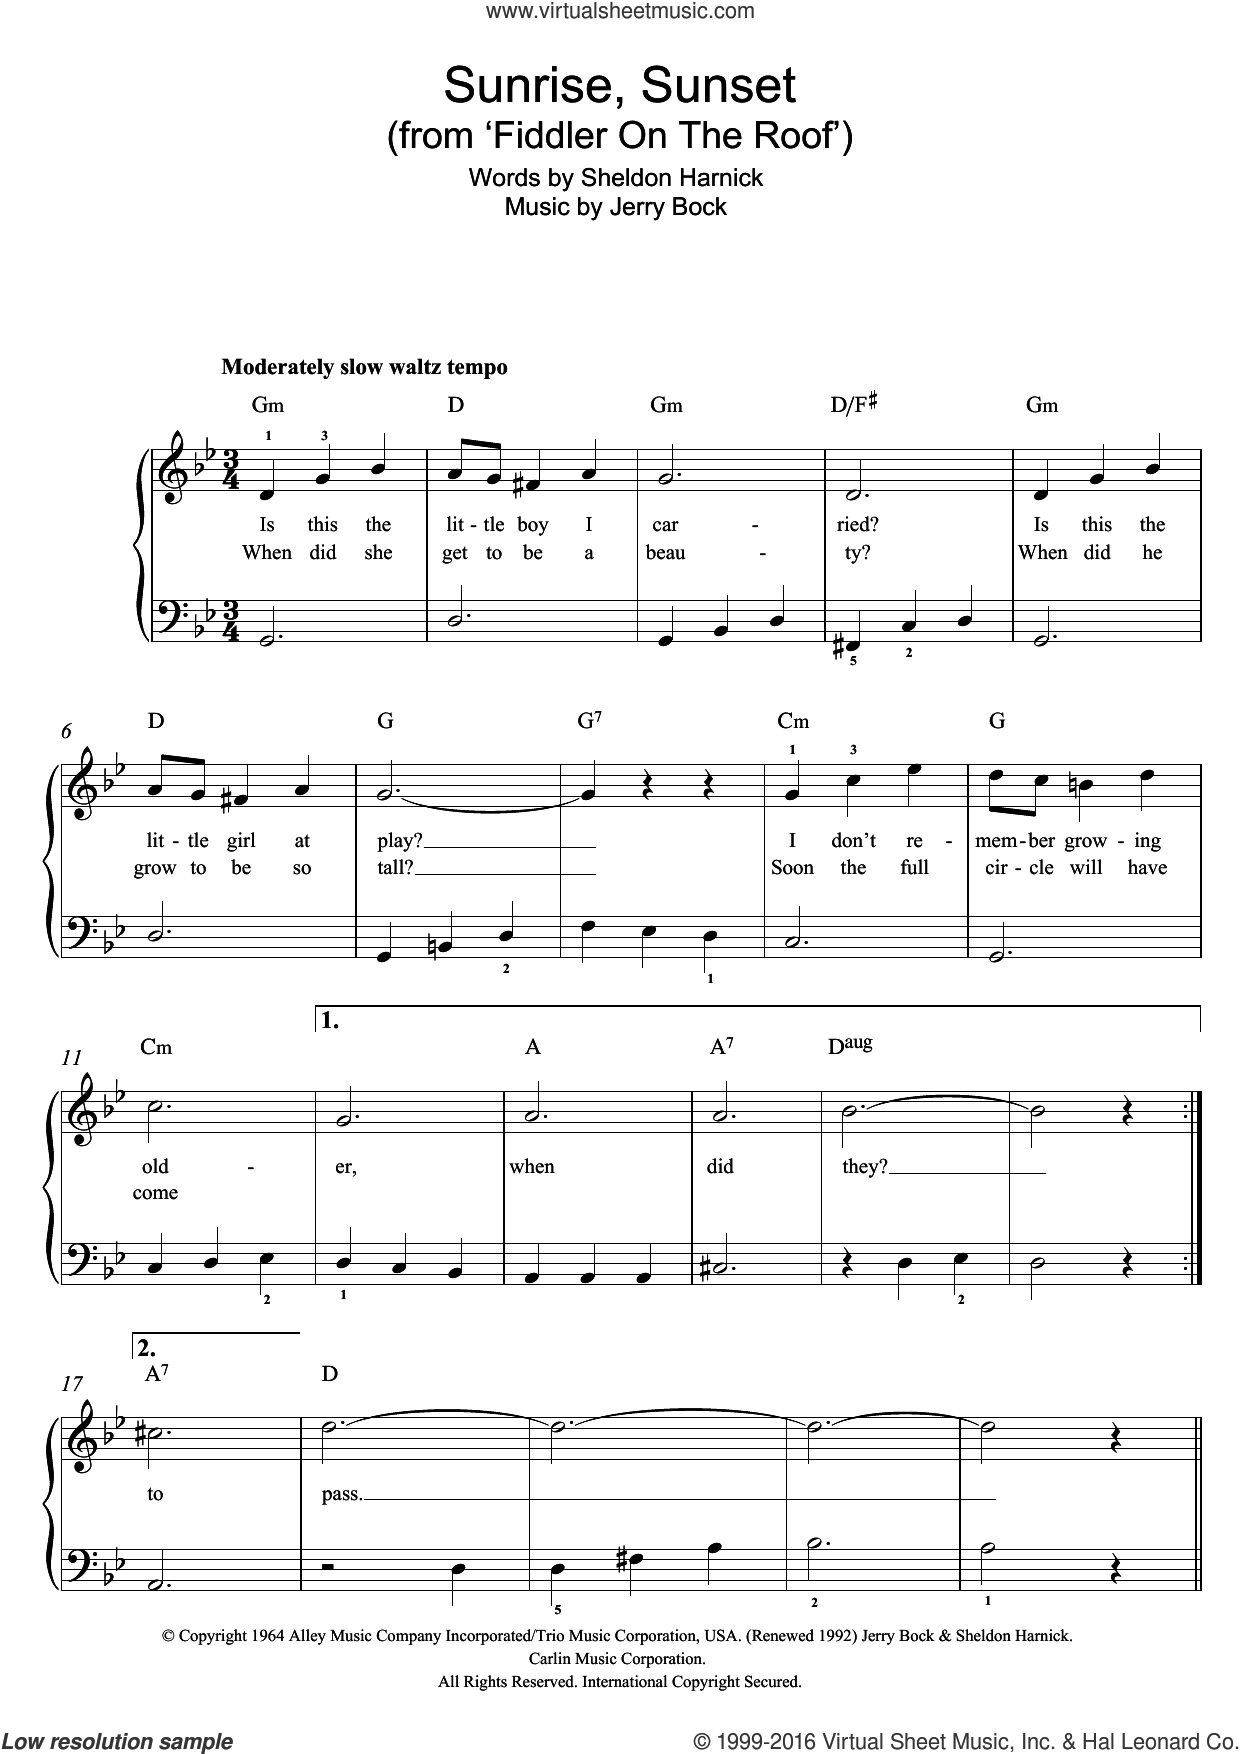 Sunrise, Sunset (from Fiddler On The Roof) sheet music for piano solo by Jerry Bock and Sheldon Harnick, easy. Score Image Preview.